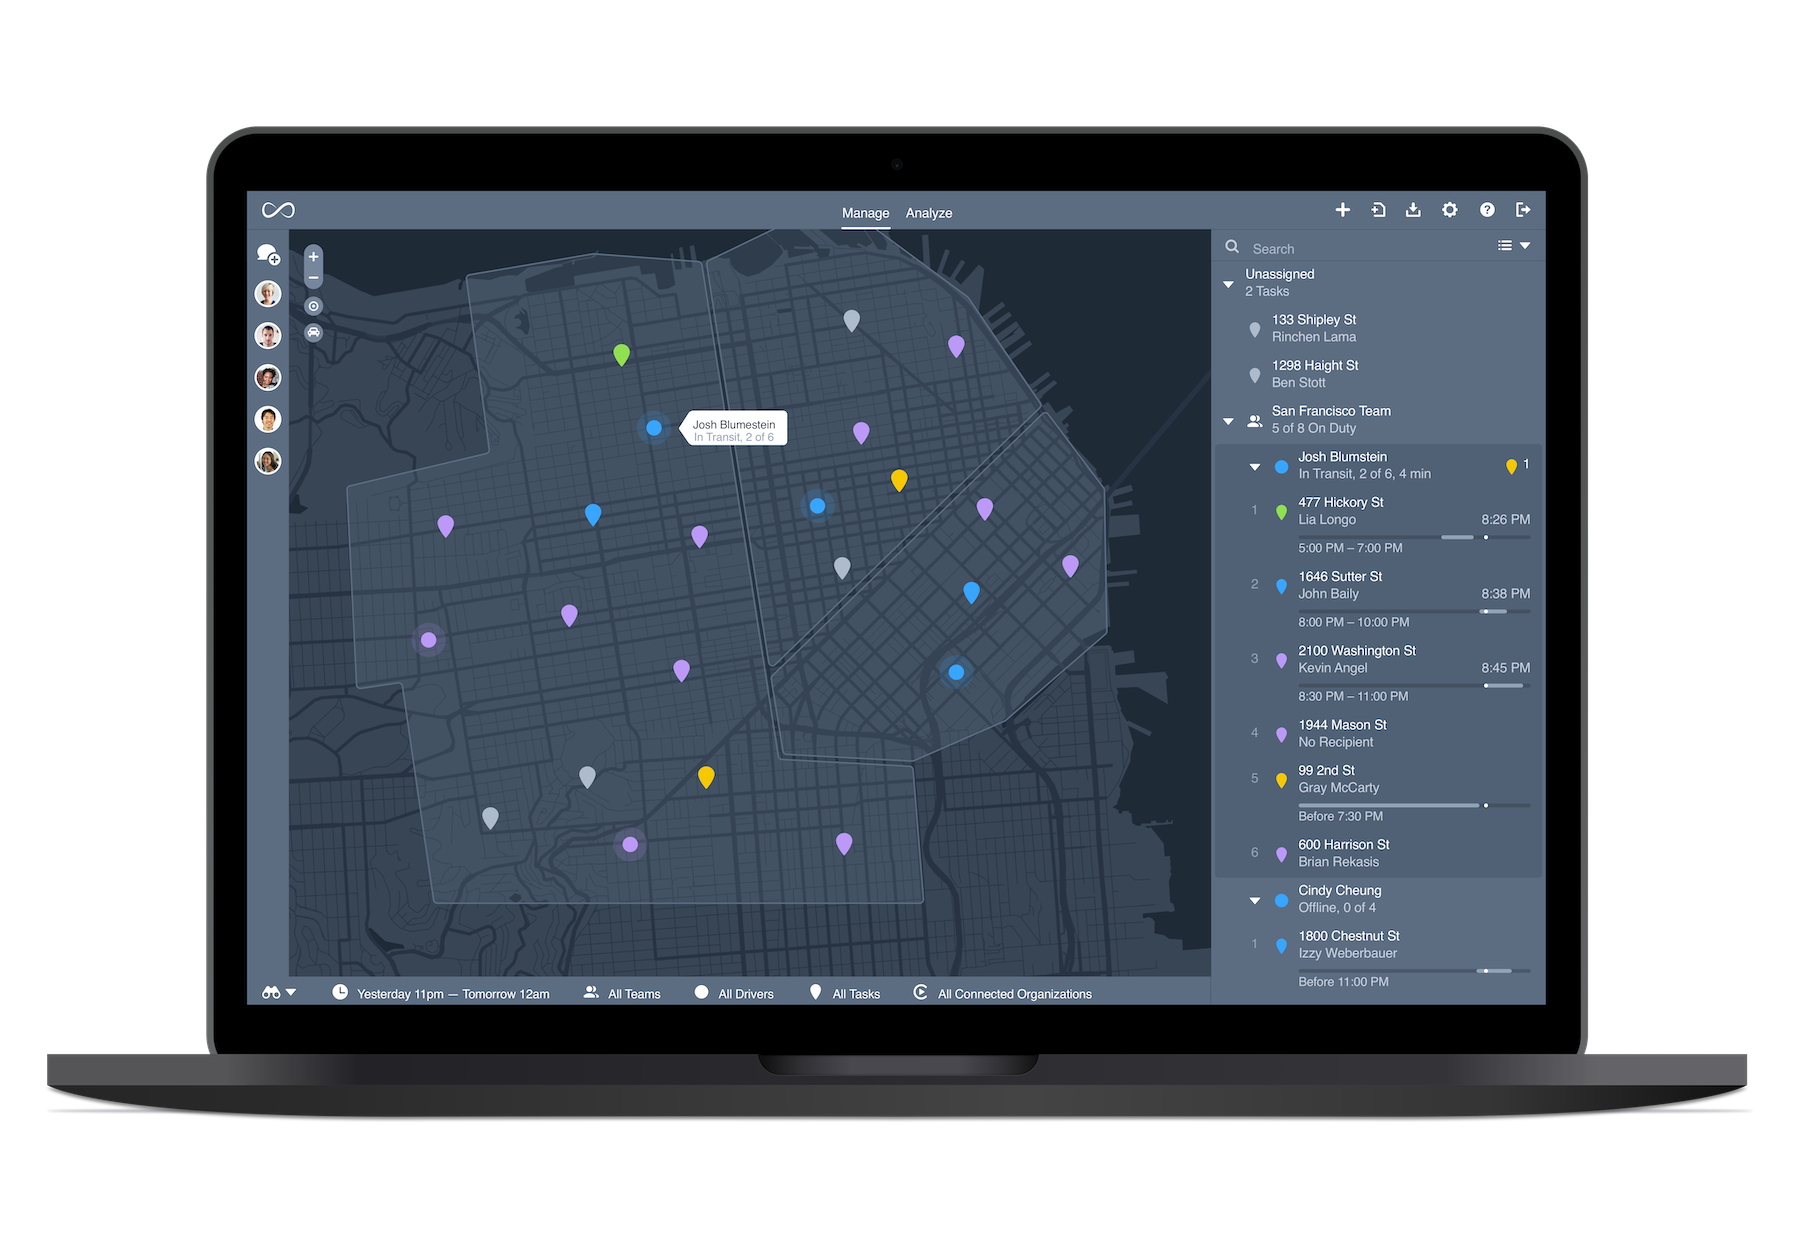 Map dashboards display customizable overlays and location markers, denoting service zones, routes and driver locations. Gain real-time, complete visibility over your operations.